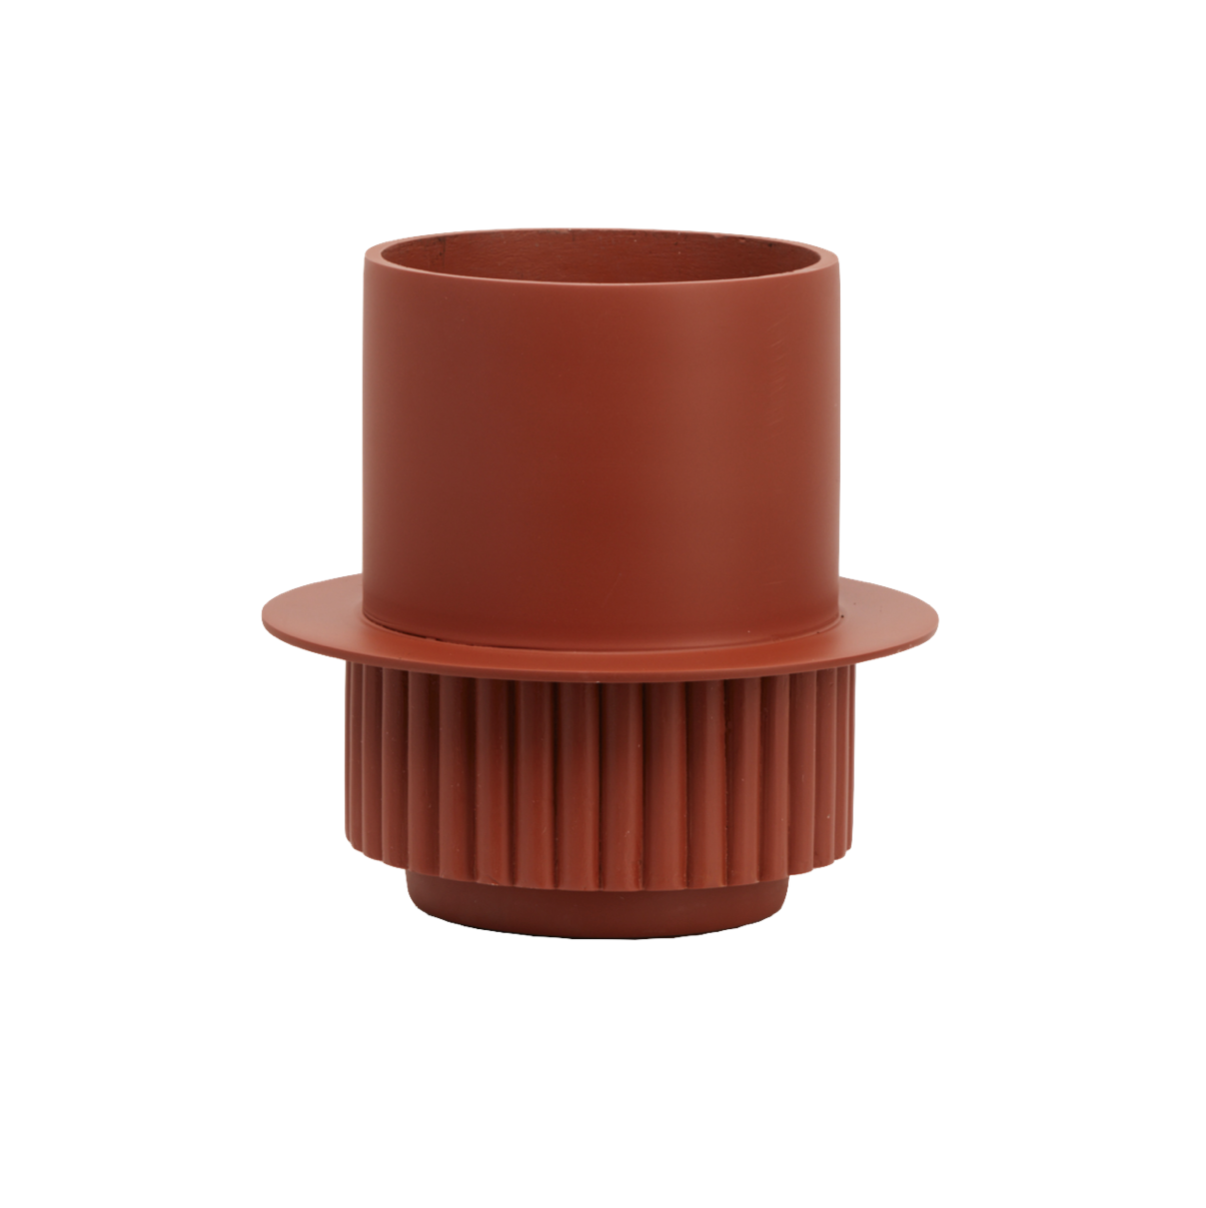 Roma Planter Pot | Terracotta